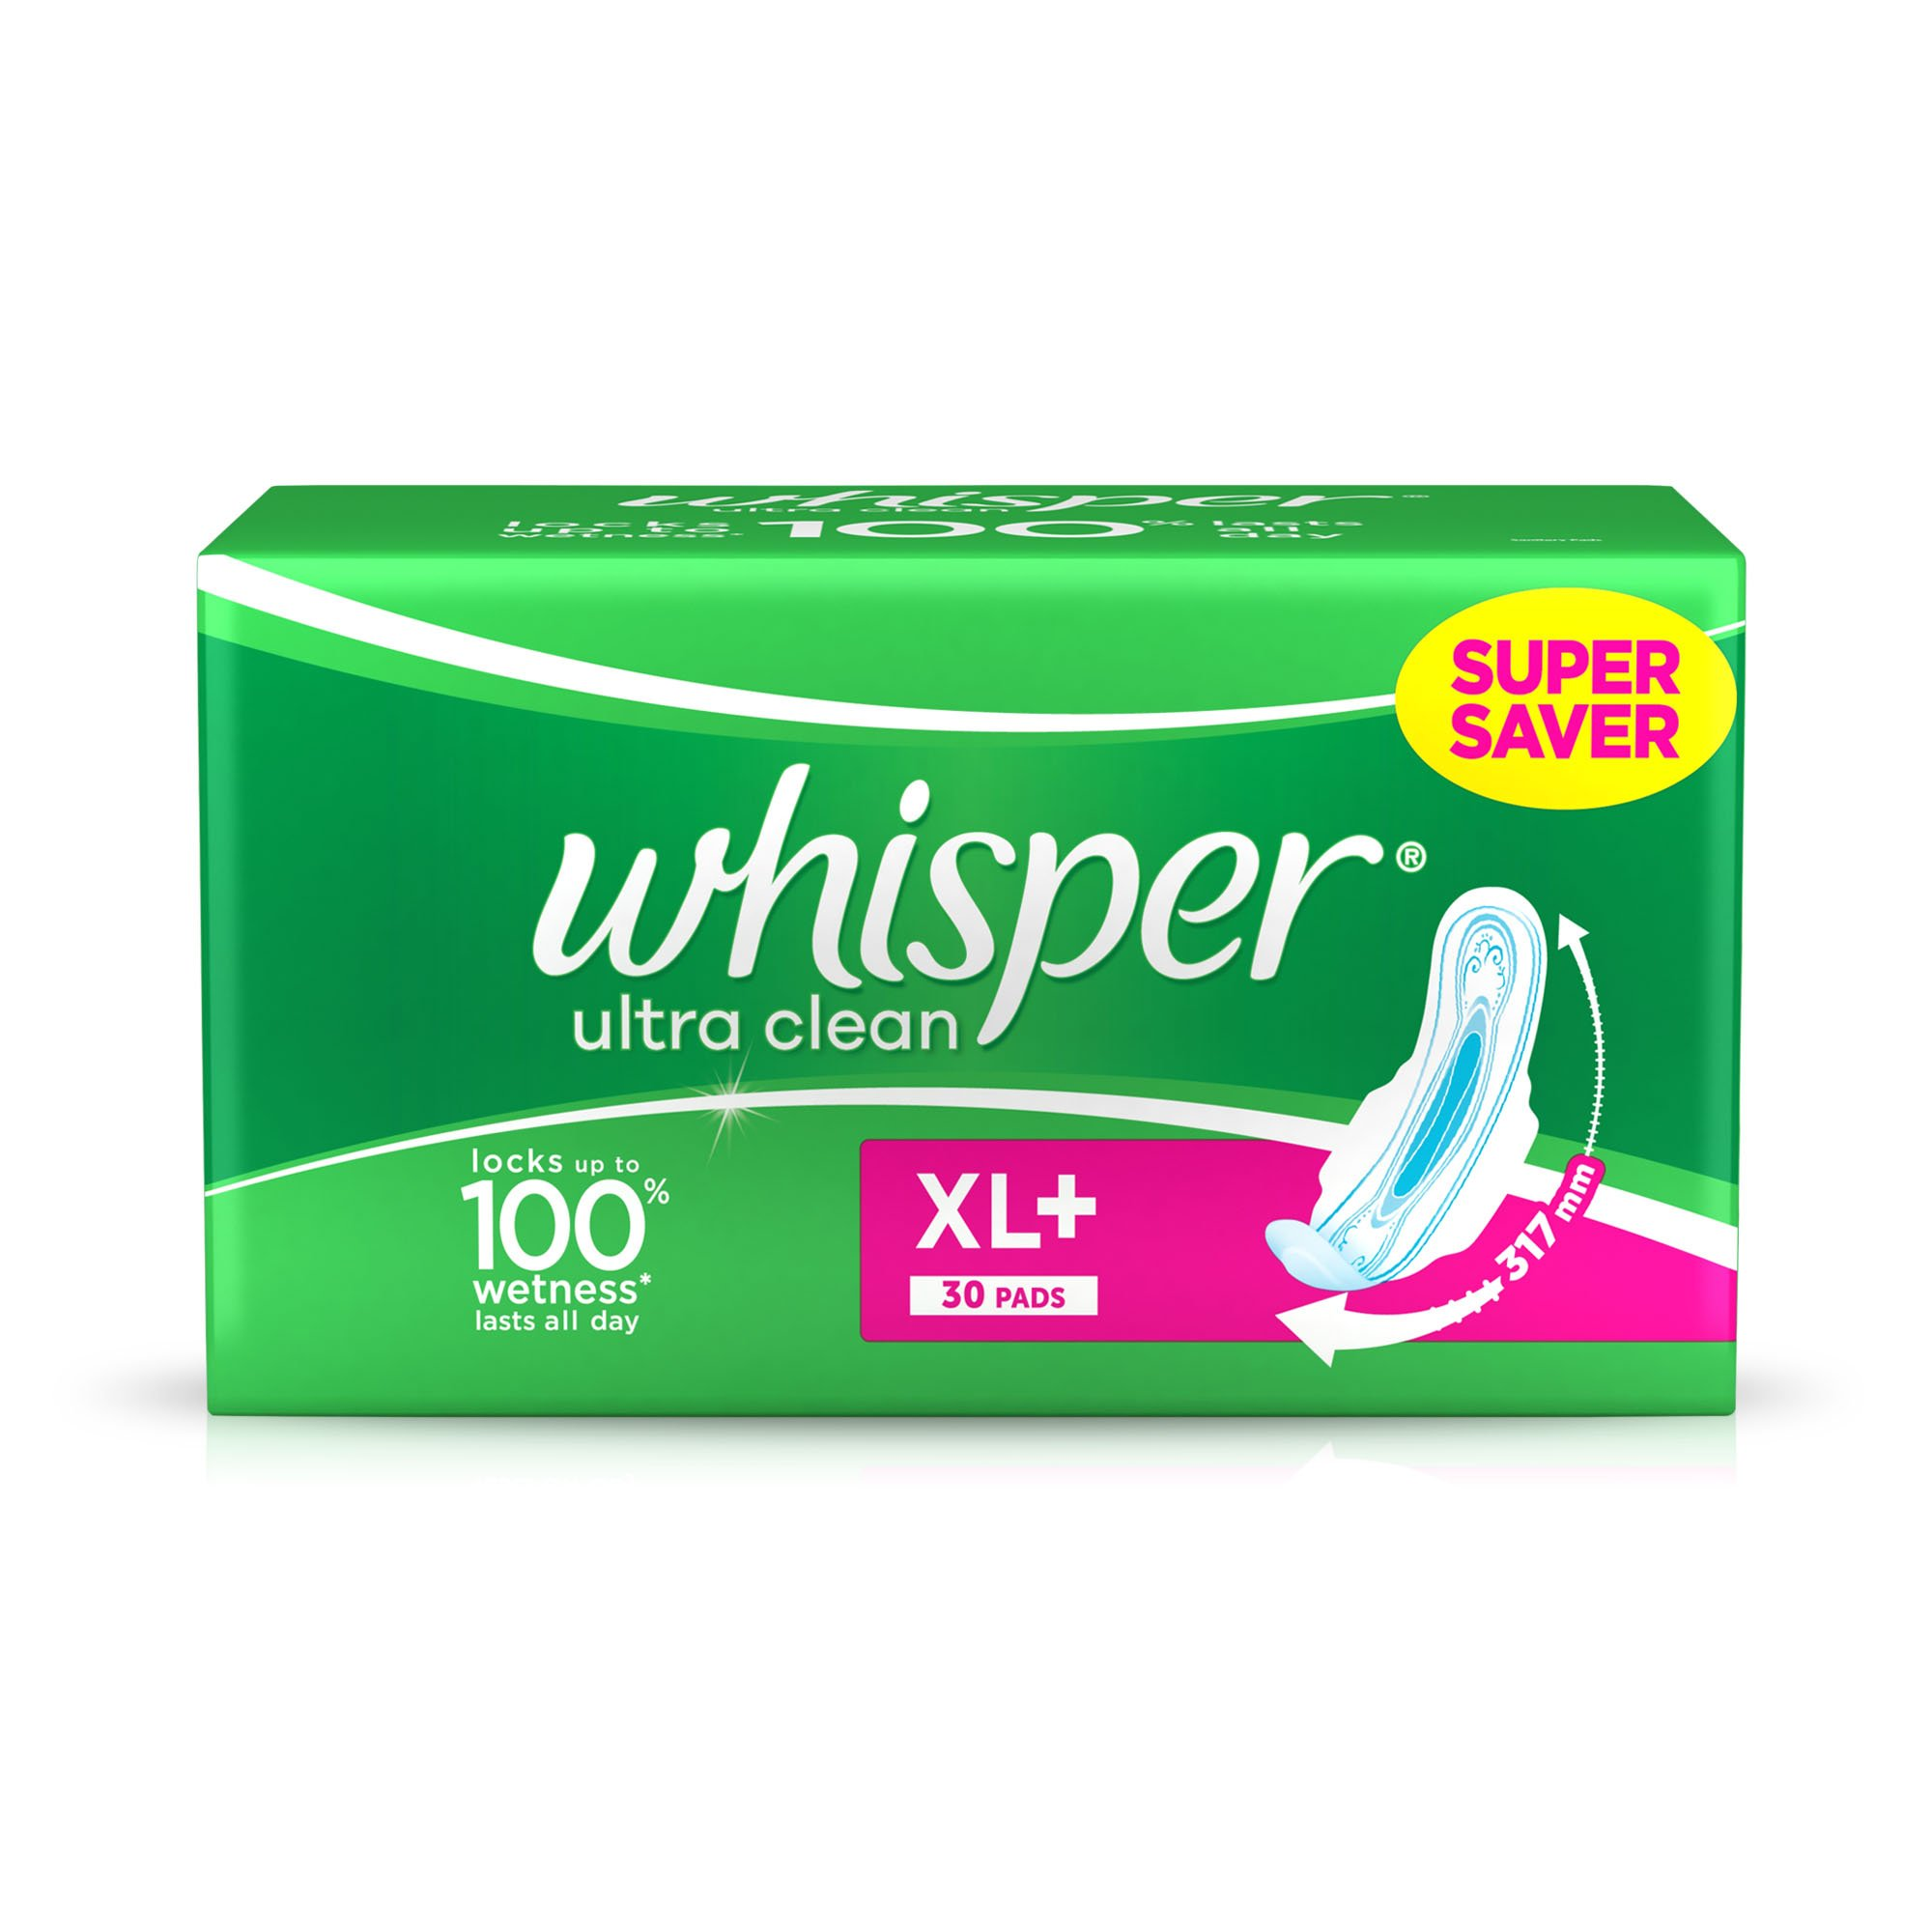 Whisper Ultra Plus Sanitary Pads XL Plus - 30 Count product image